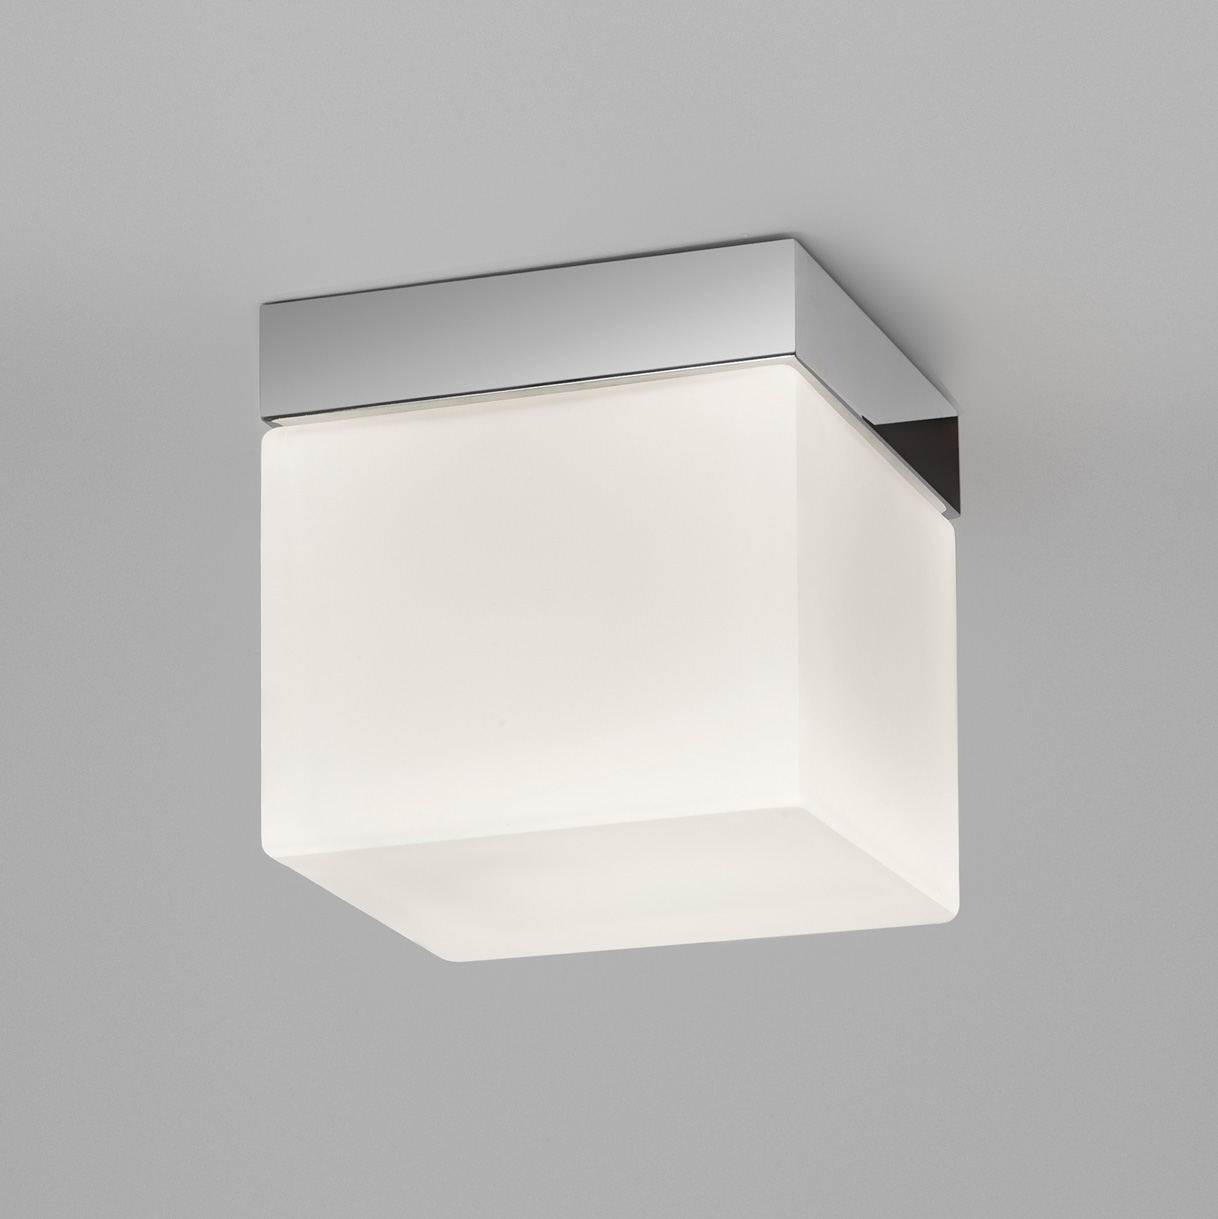 Astro Sabina 7095 square ceiling light 60W E27 IP44 polished chrome opal glass